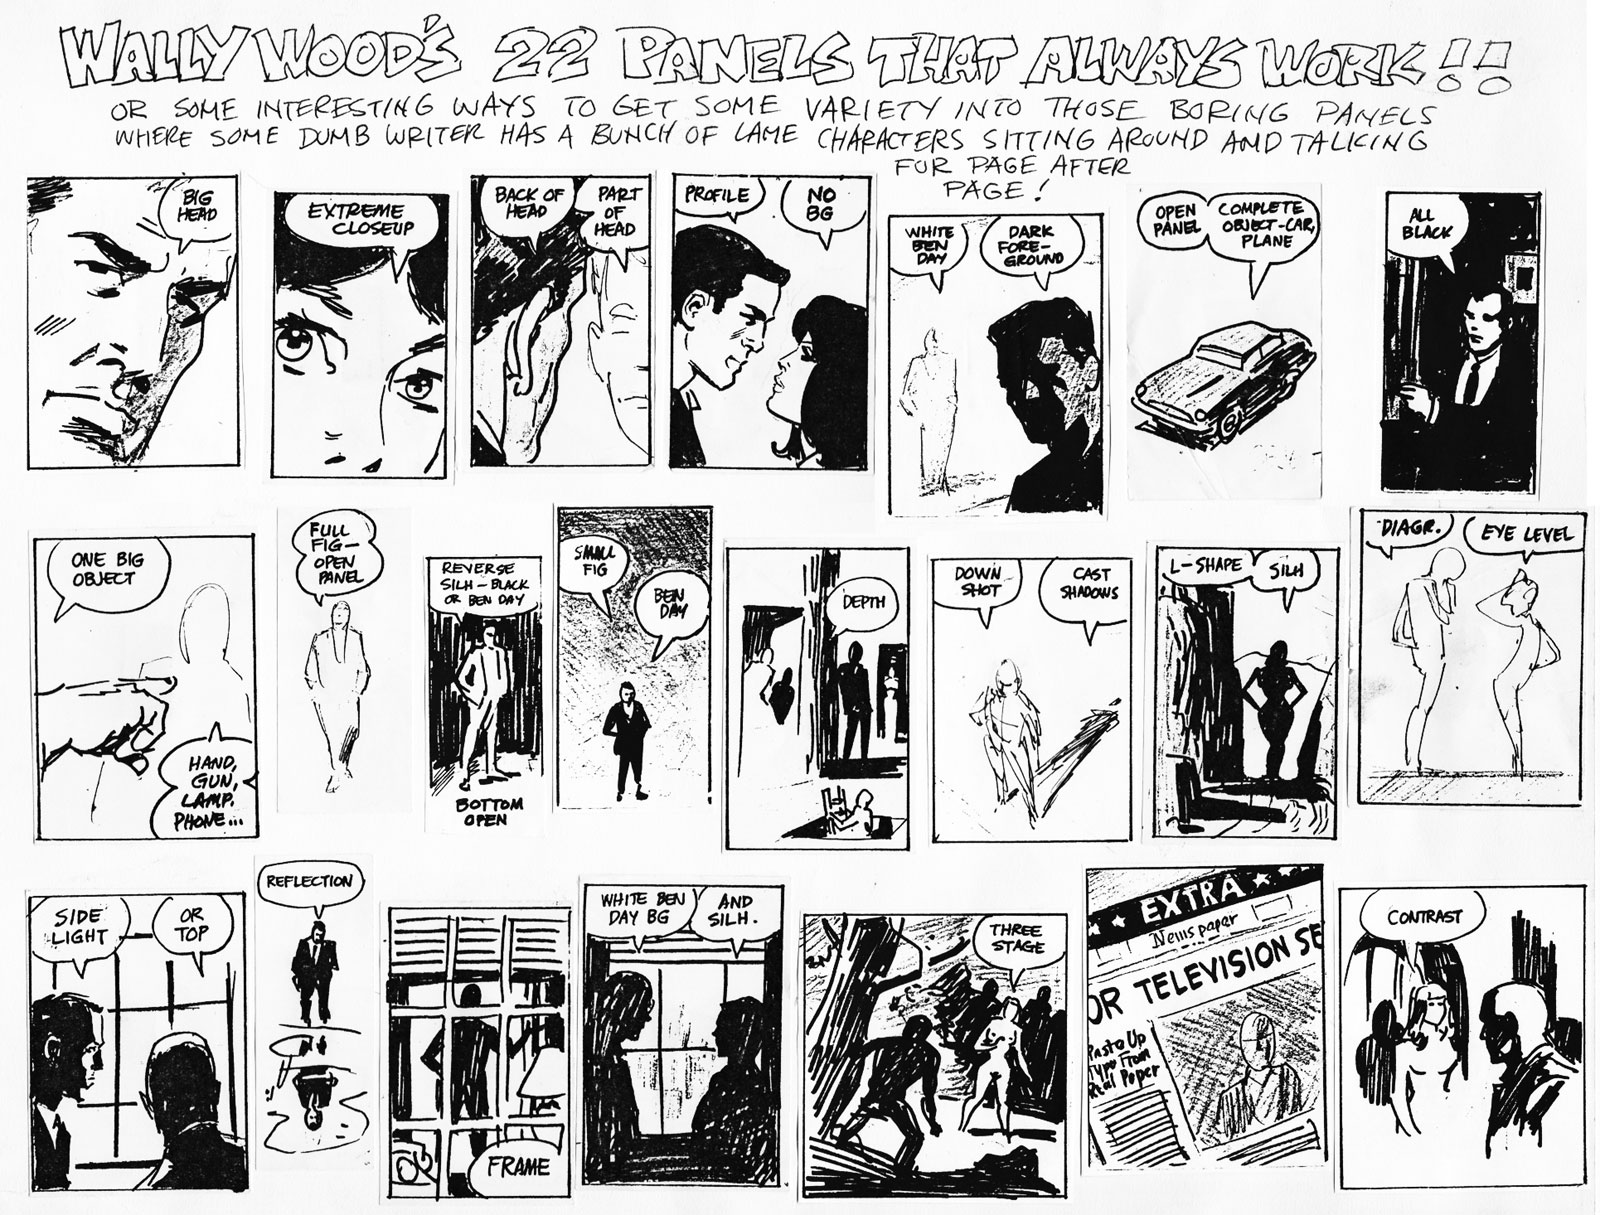 Wally Wood\'s 22 Panels/Frames that Always Work, In Print and Video ...